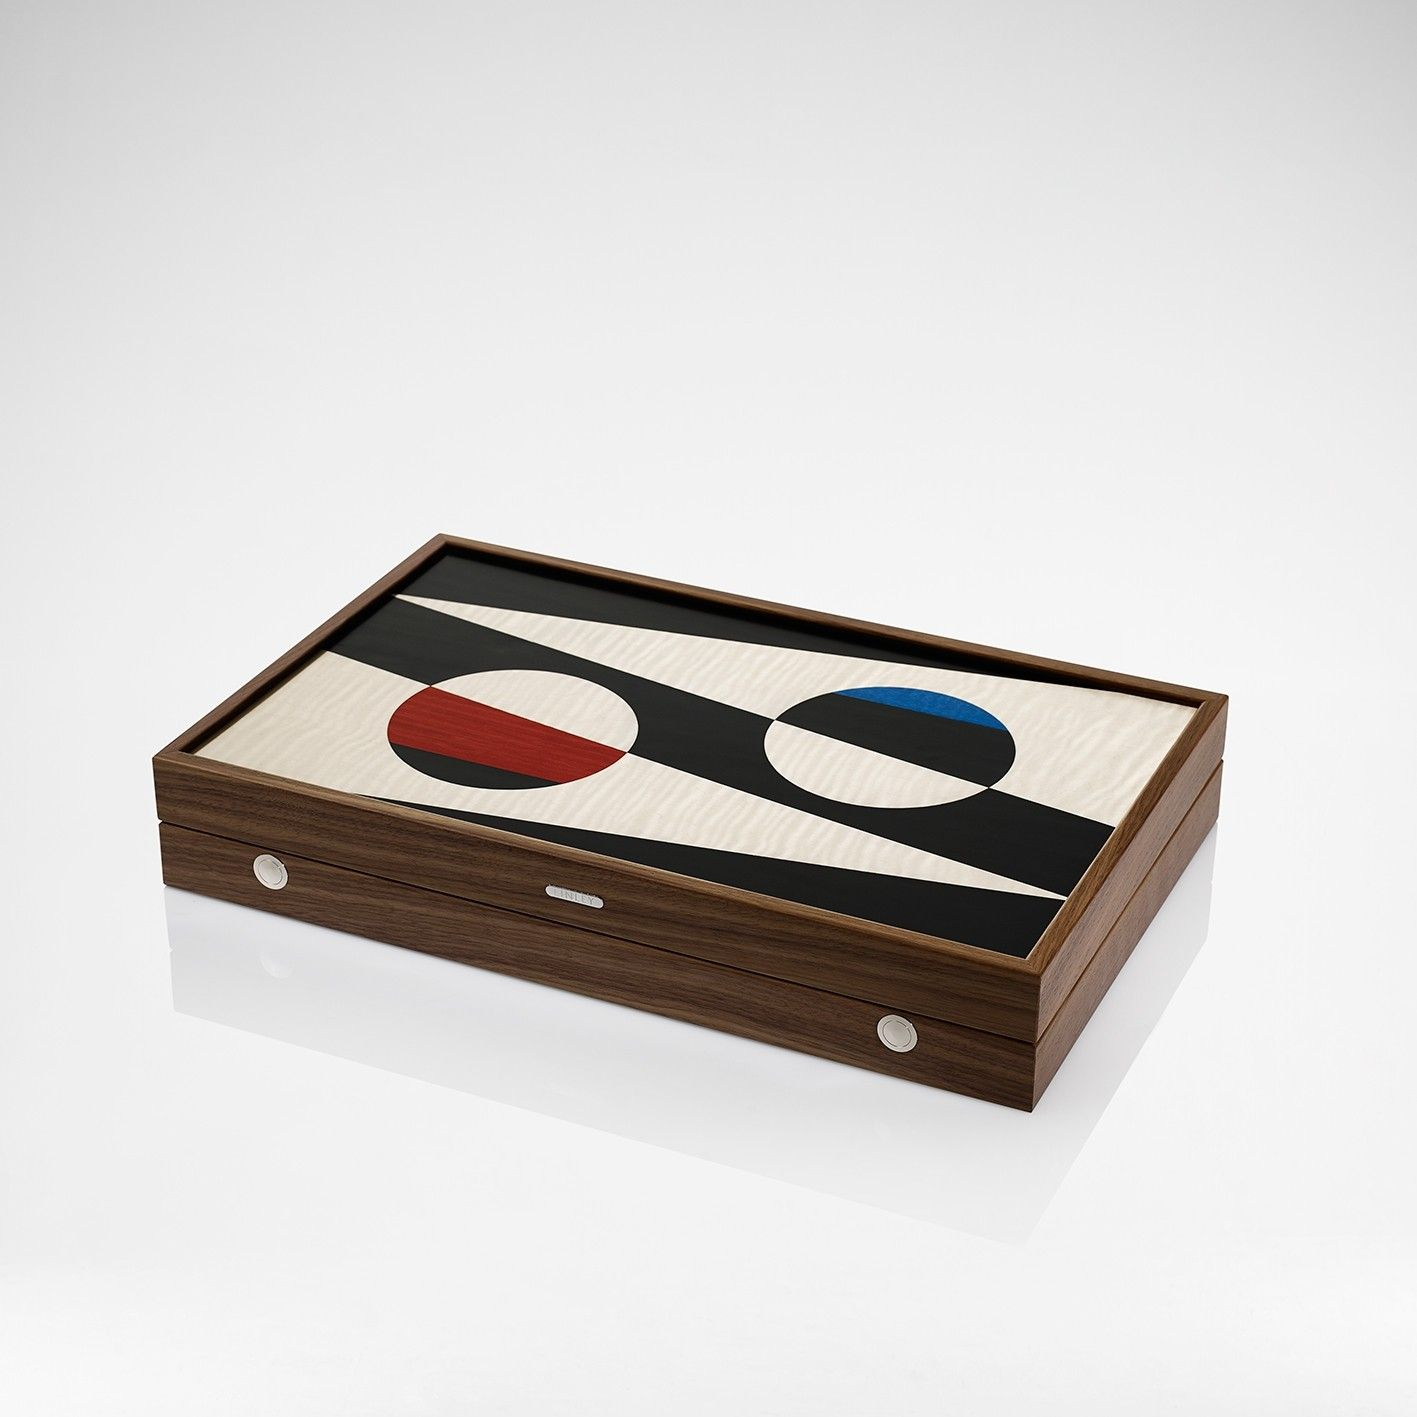 LINLEY | Games and Sporting | Red Backgammon Board | Luxury Gifts & Homeware, Furniture, Interior Design, Bespoke